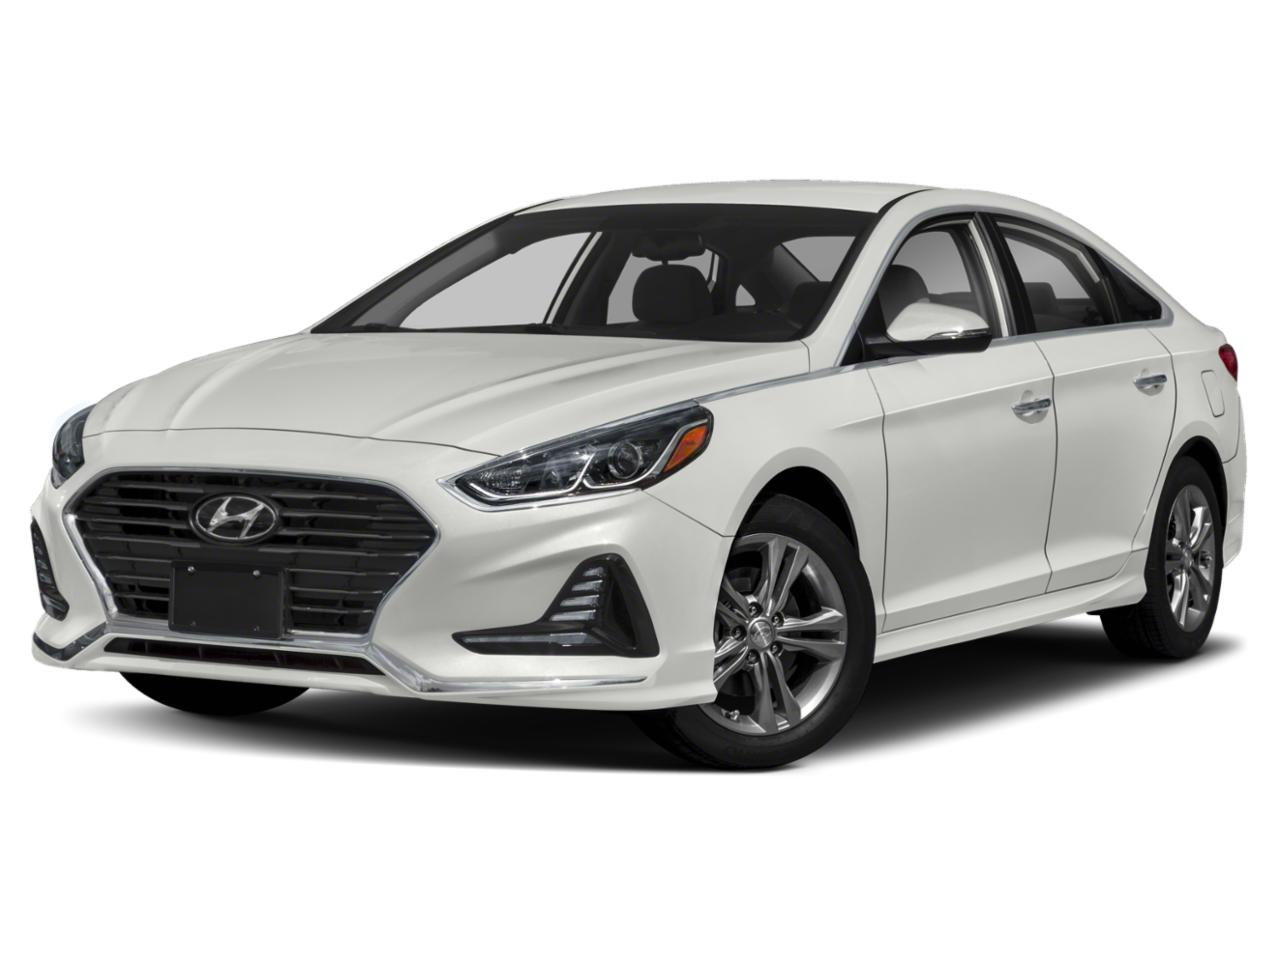 2019 Hyundai Sonata Vehicle Photo in Nashua, NH 03060